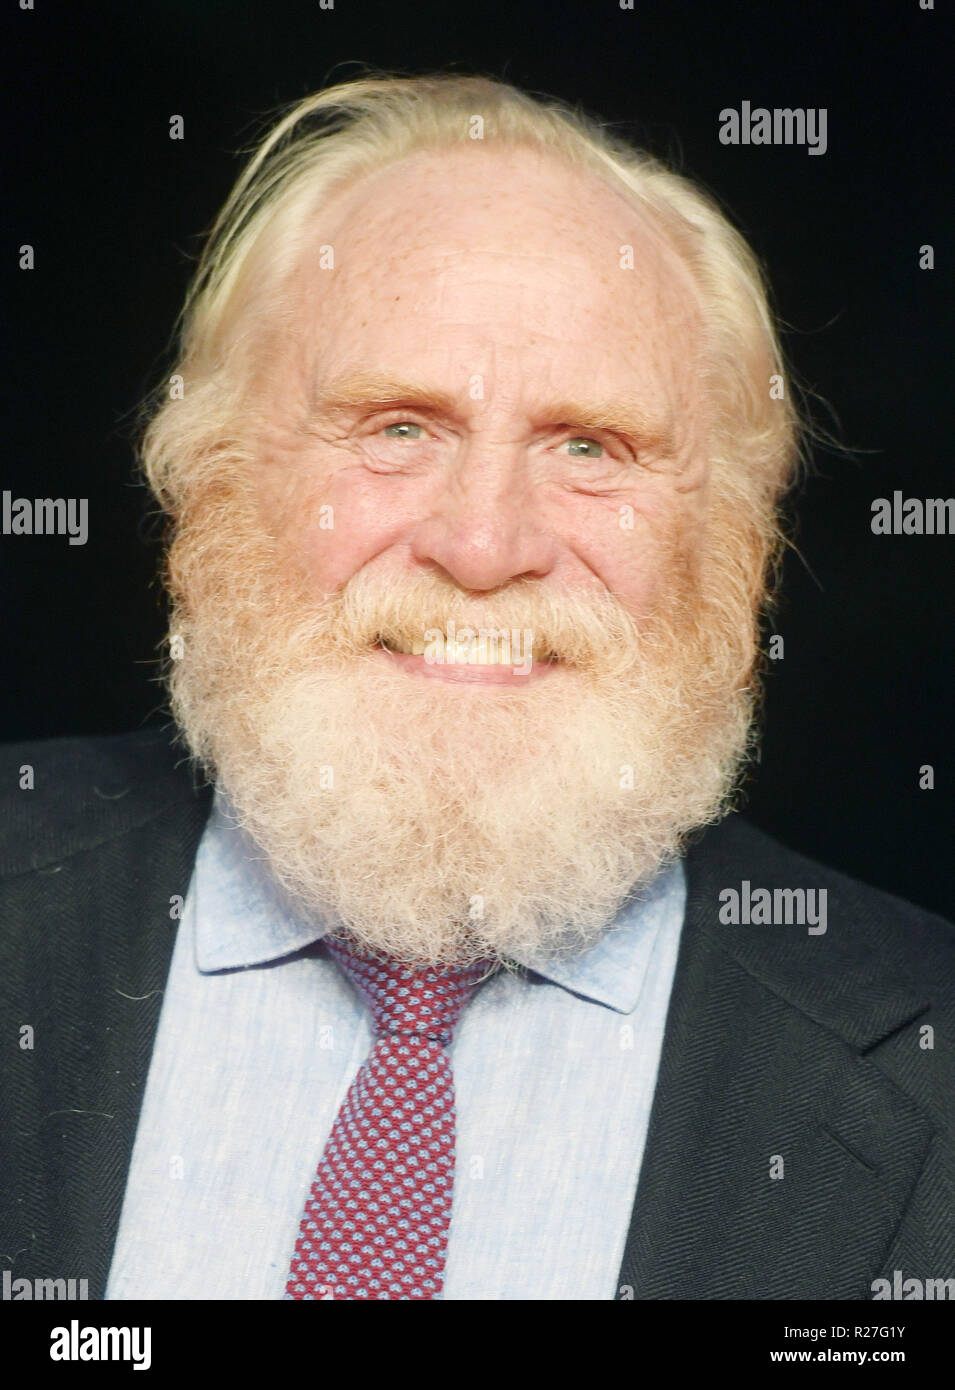 62nd London Film Festival - The Outllaw King - Premiere  Featuring: James Cosmo Where: London, United Kingdom When: 17 Oct 2018 Credit: WENN.com Stock Photo